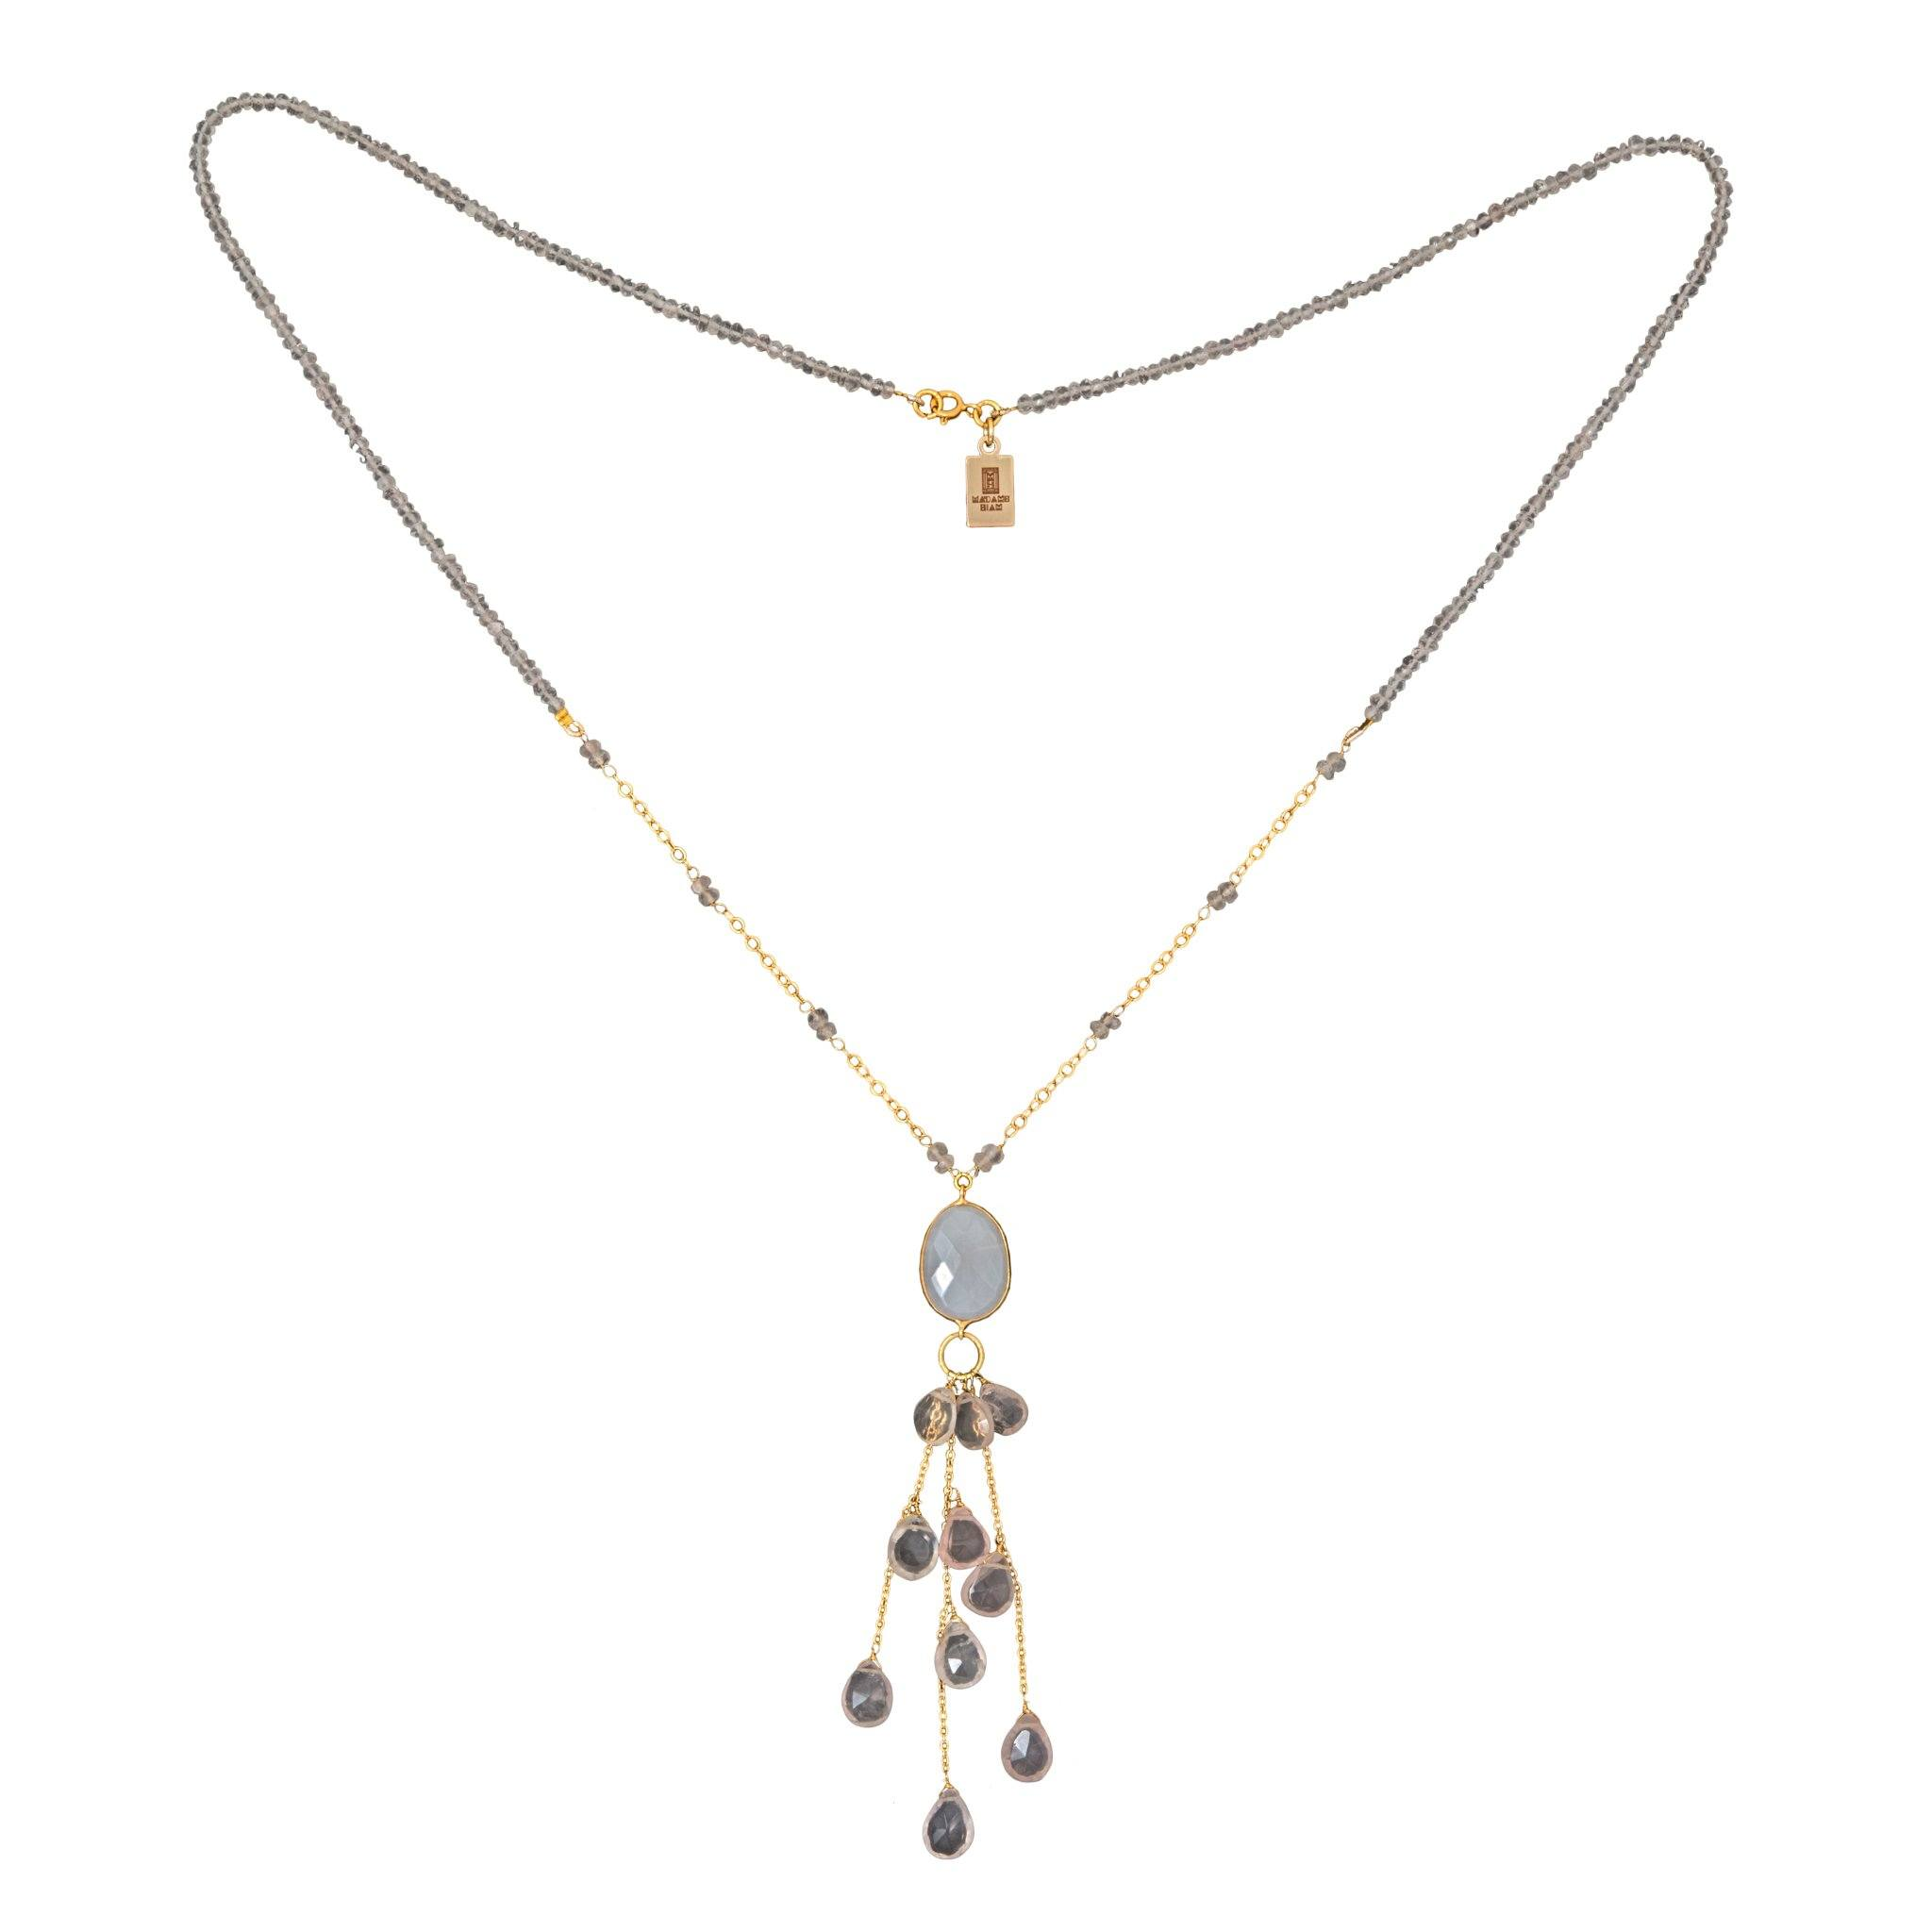 LUZ rose quartz long necklace with drops